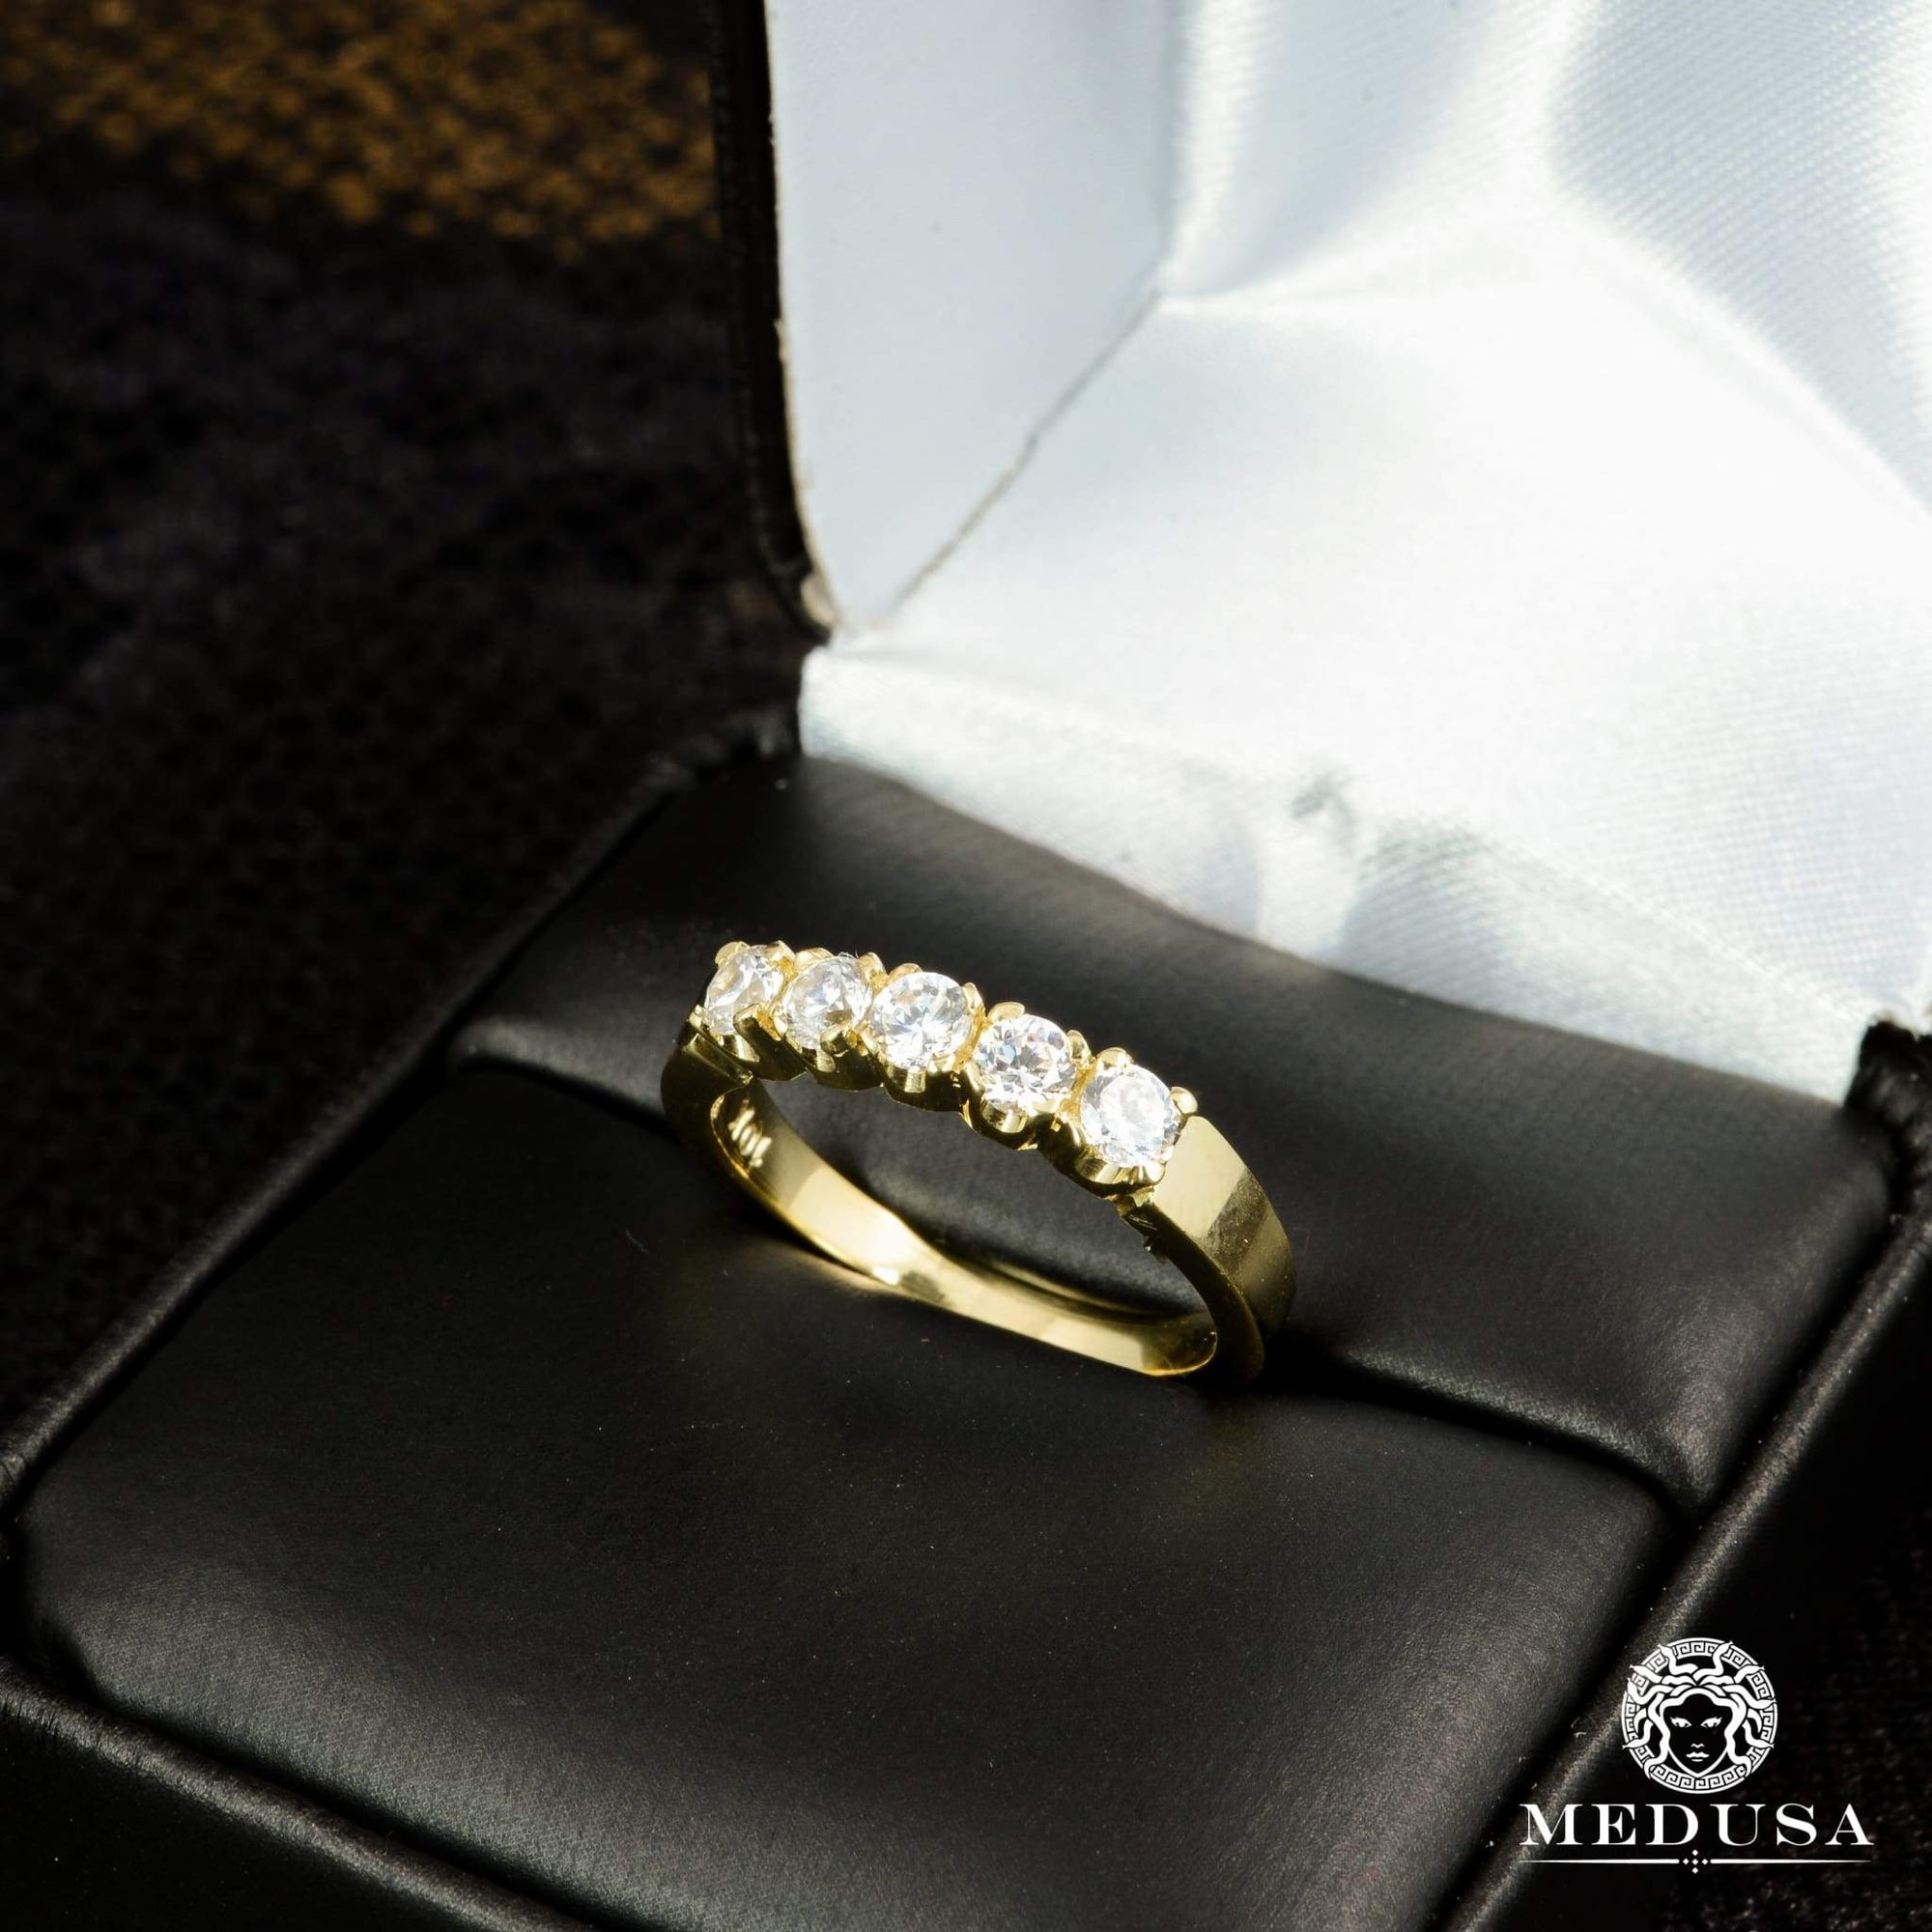 Bague à Diamants en Or 14K | Bague Fiançaille Eternity F14 - MA0178 Or Jaune